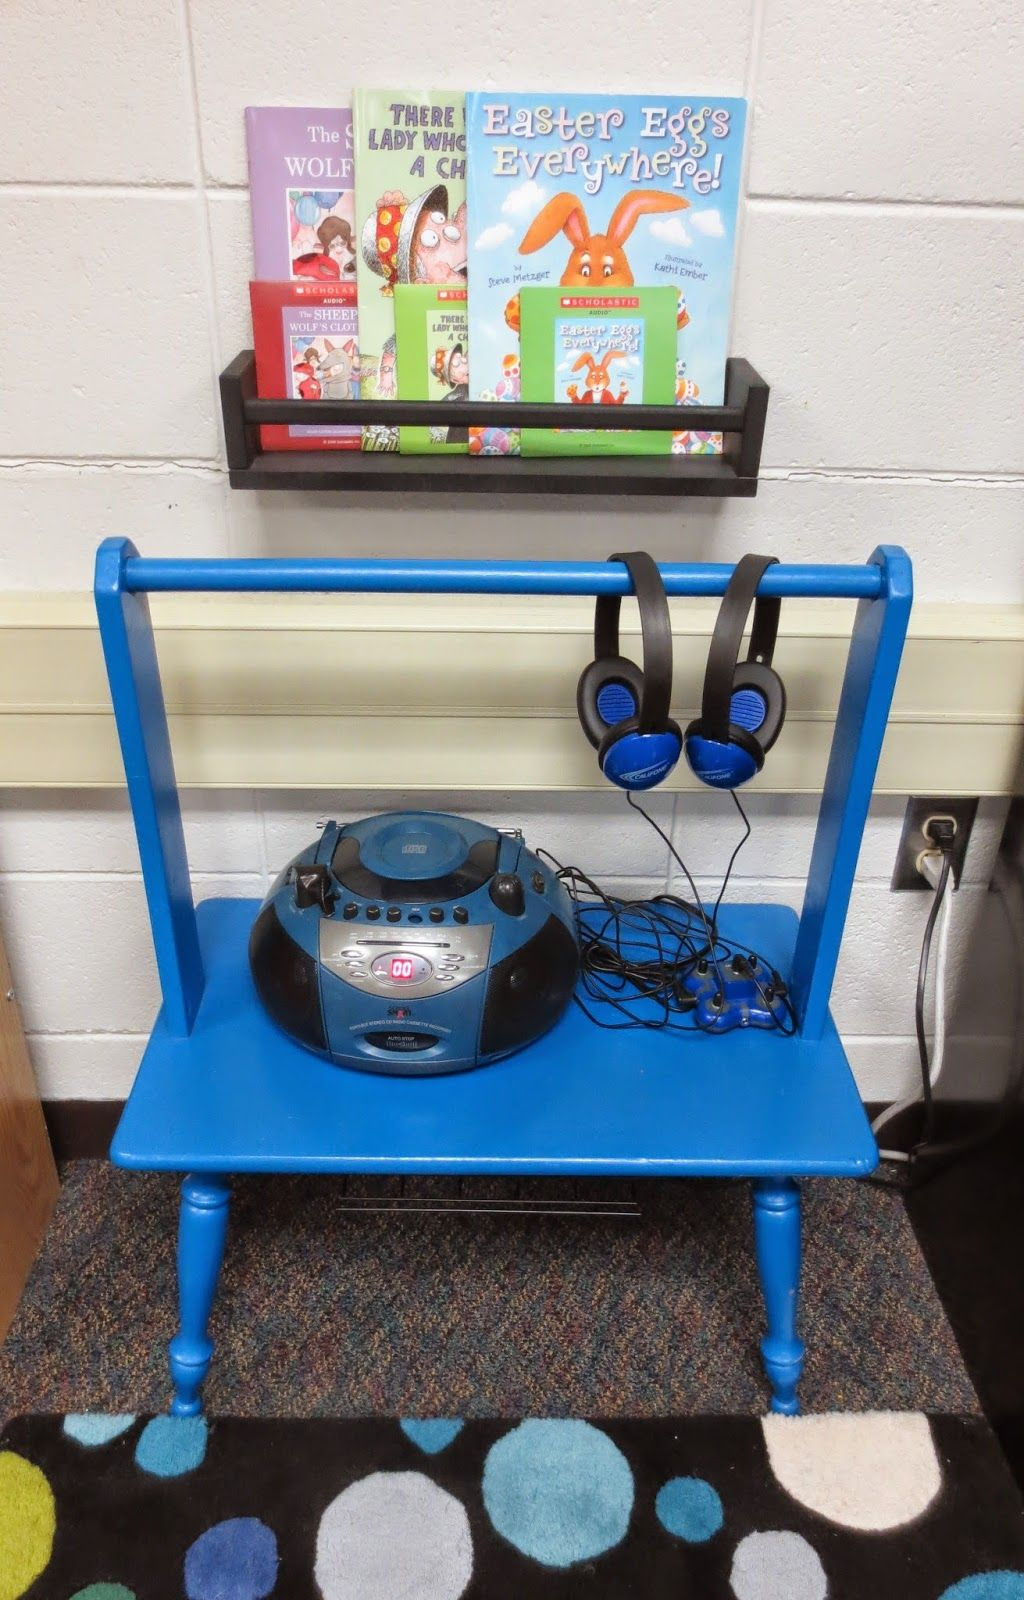 Setting Up For Second The Daily 5 In 2nd Grade